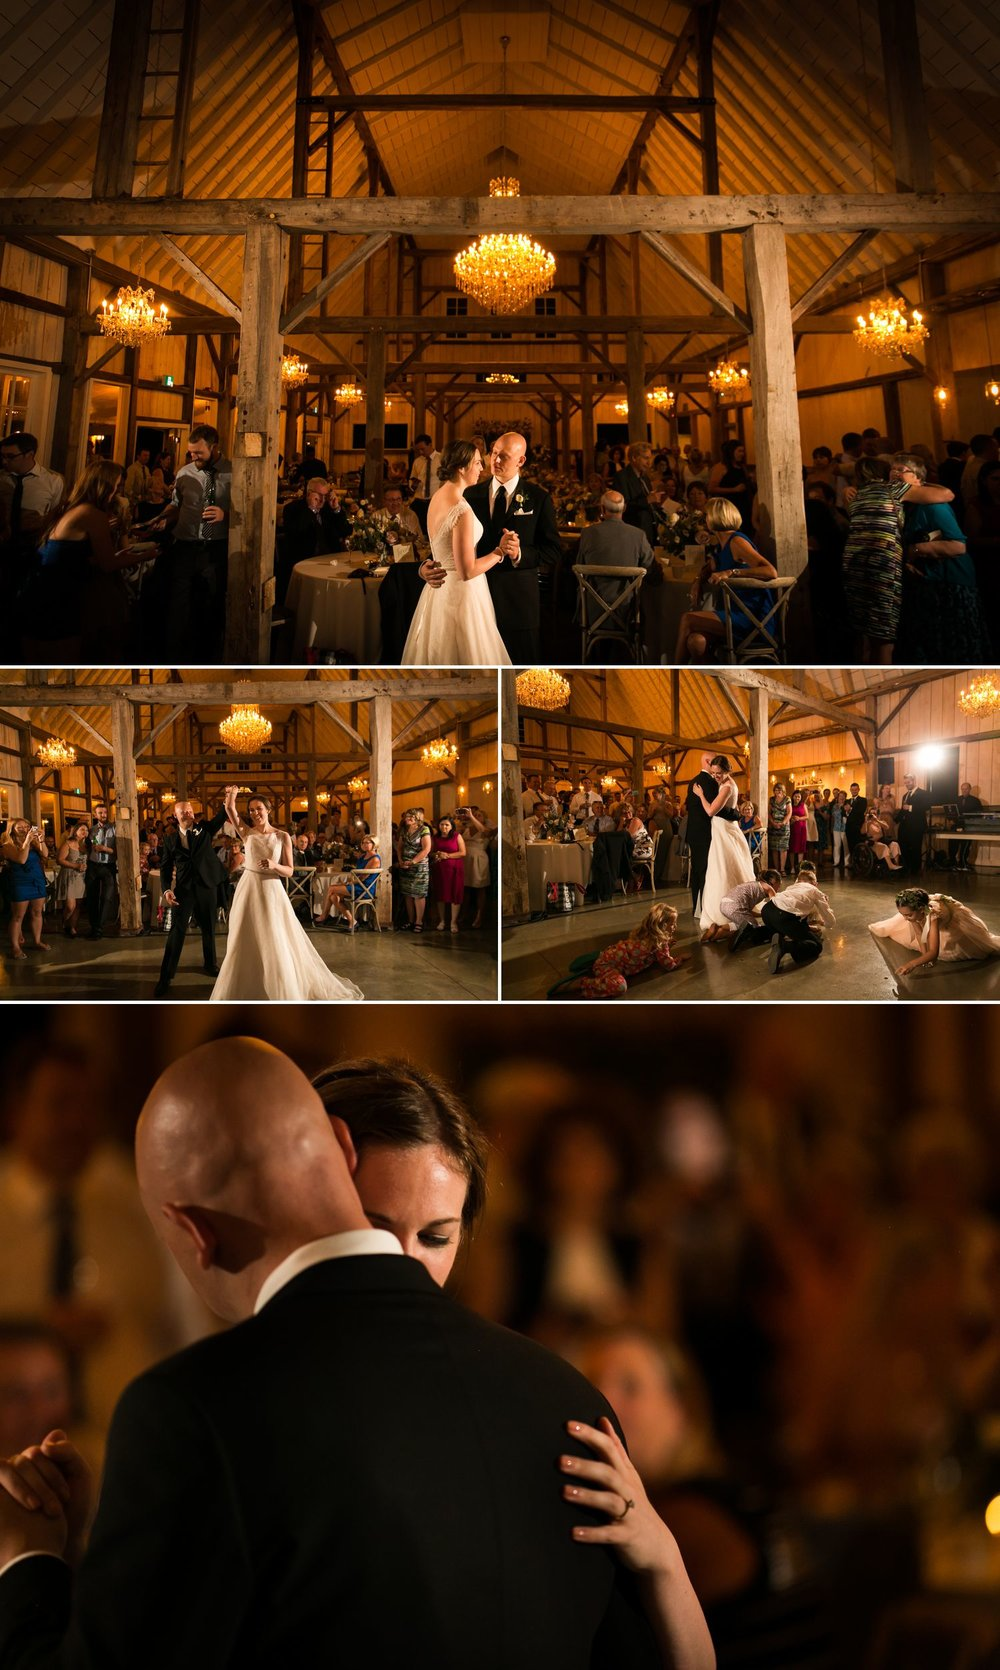 The bride and groom's first dance.